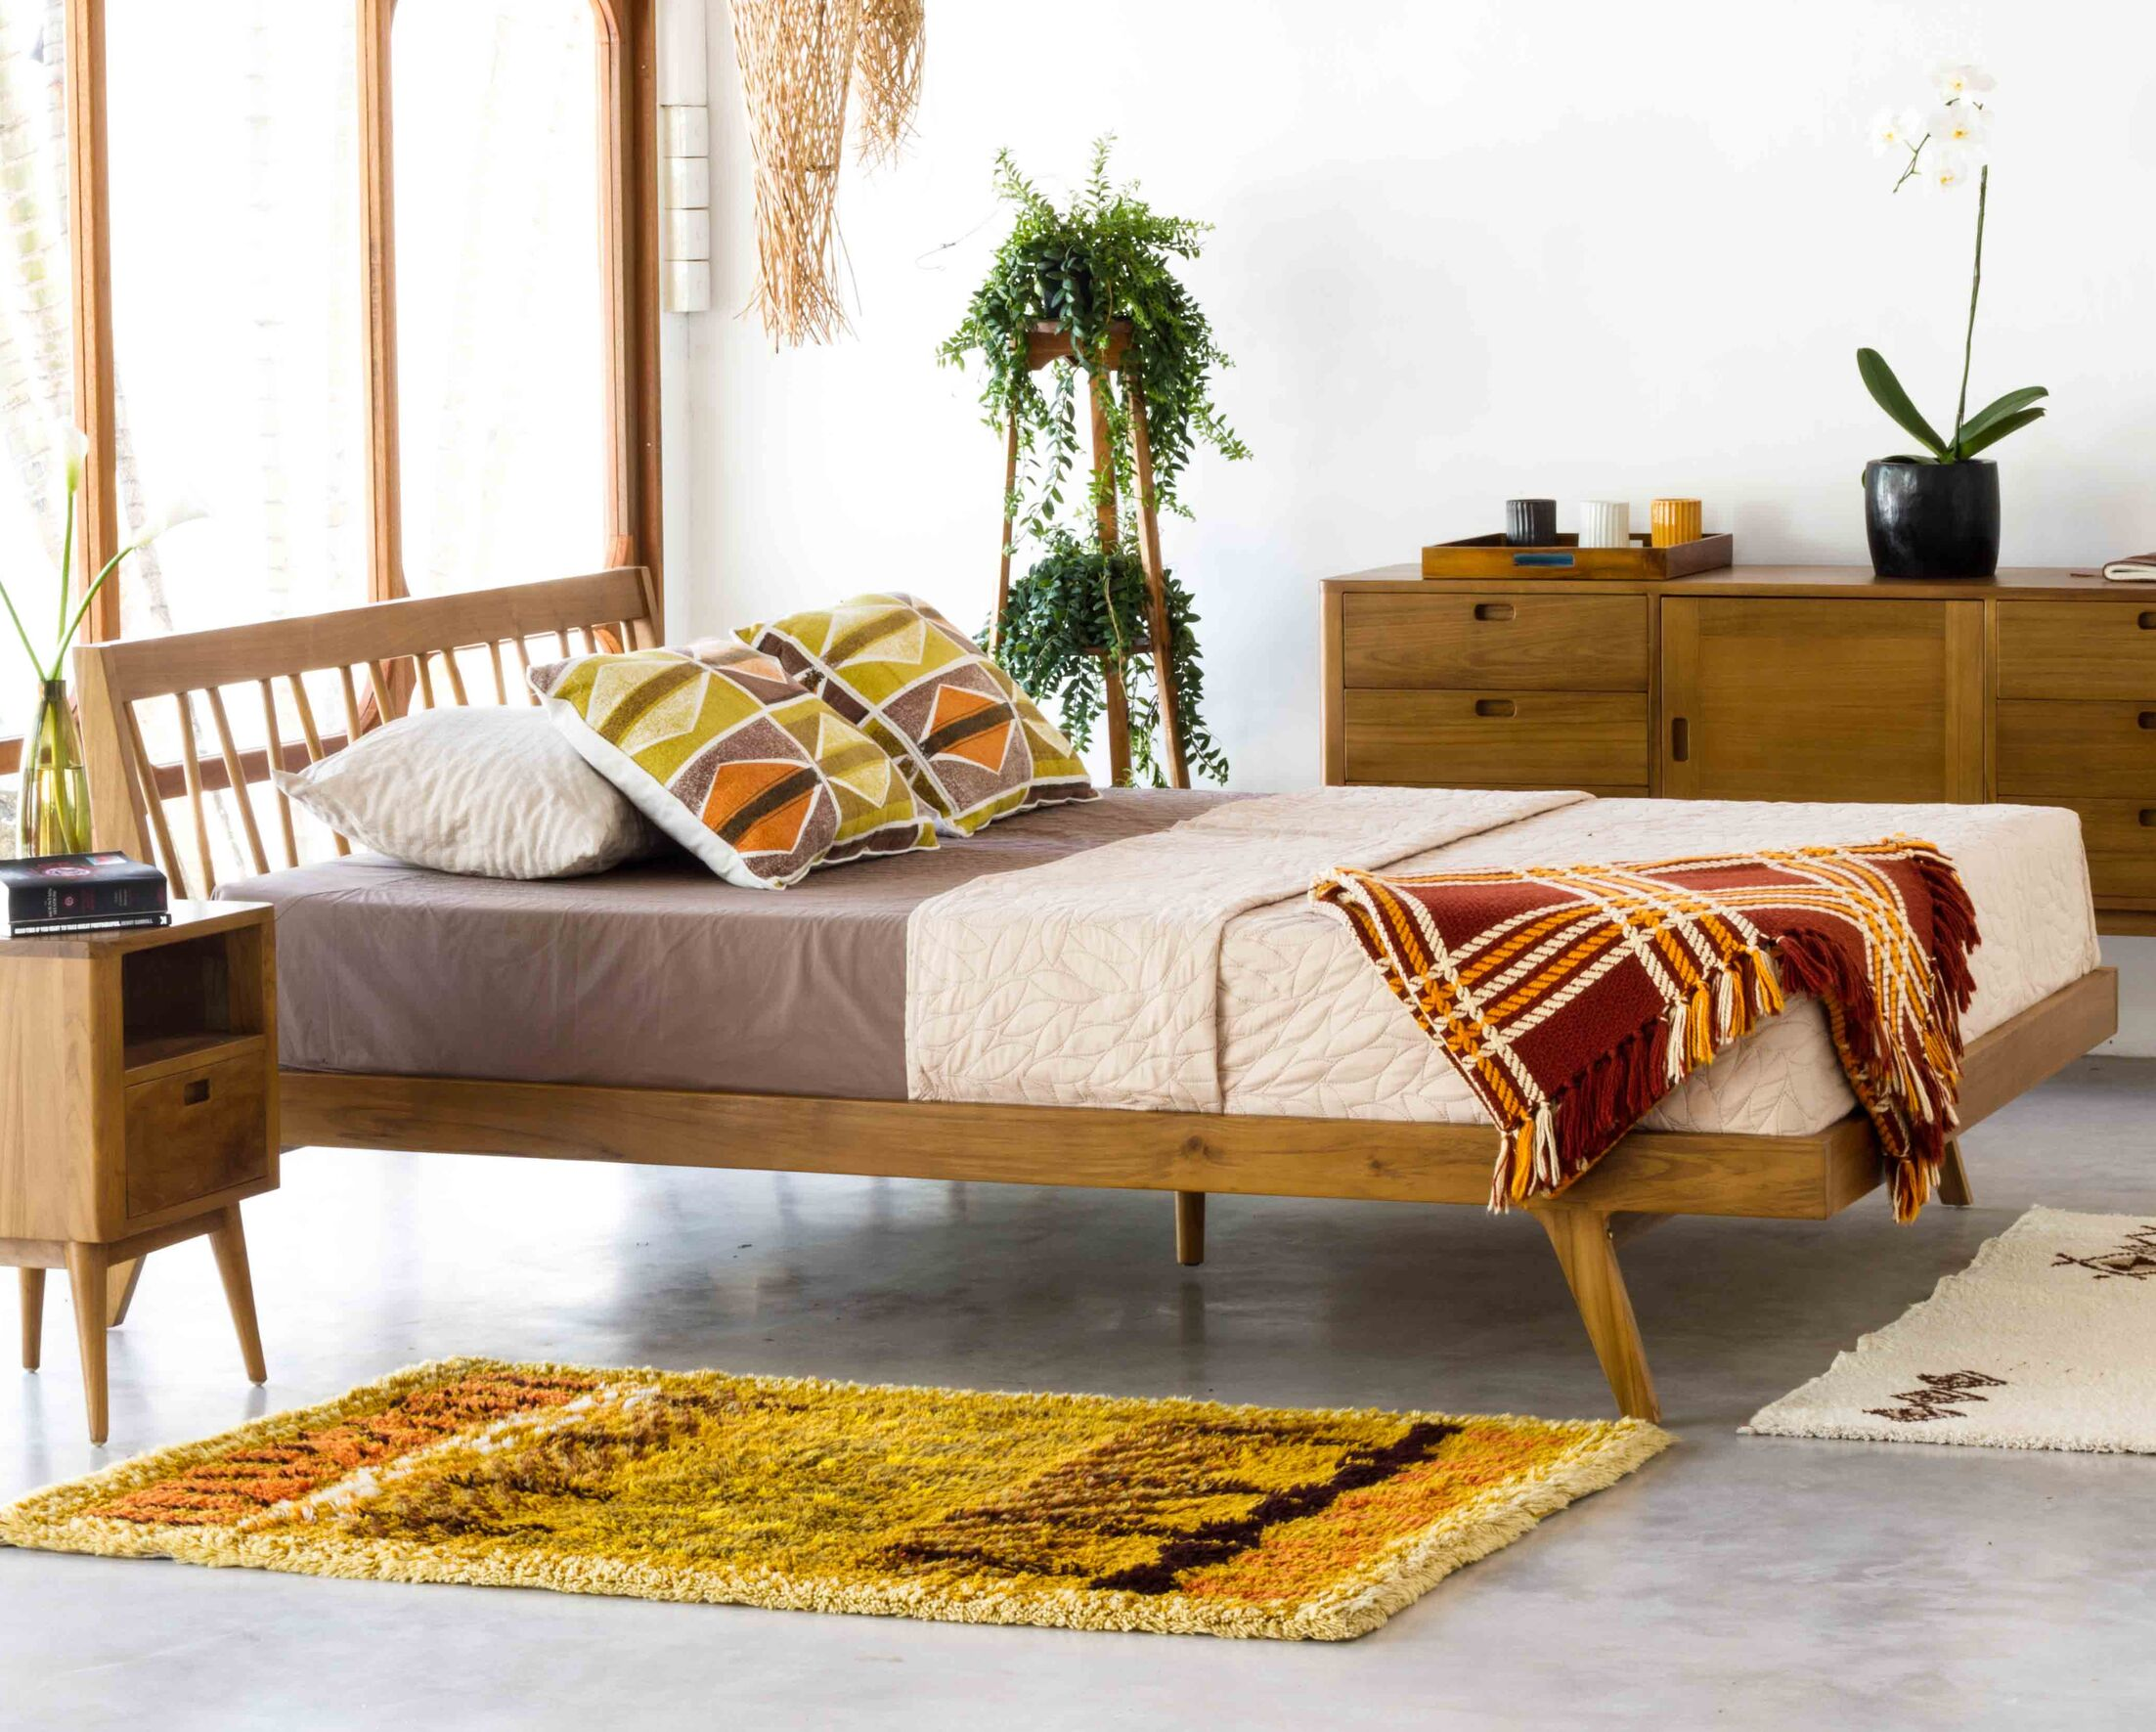 Fifties Platform Bed Size: California King